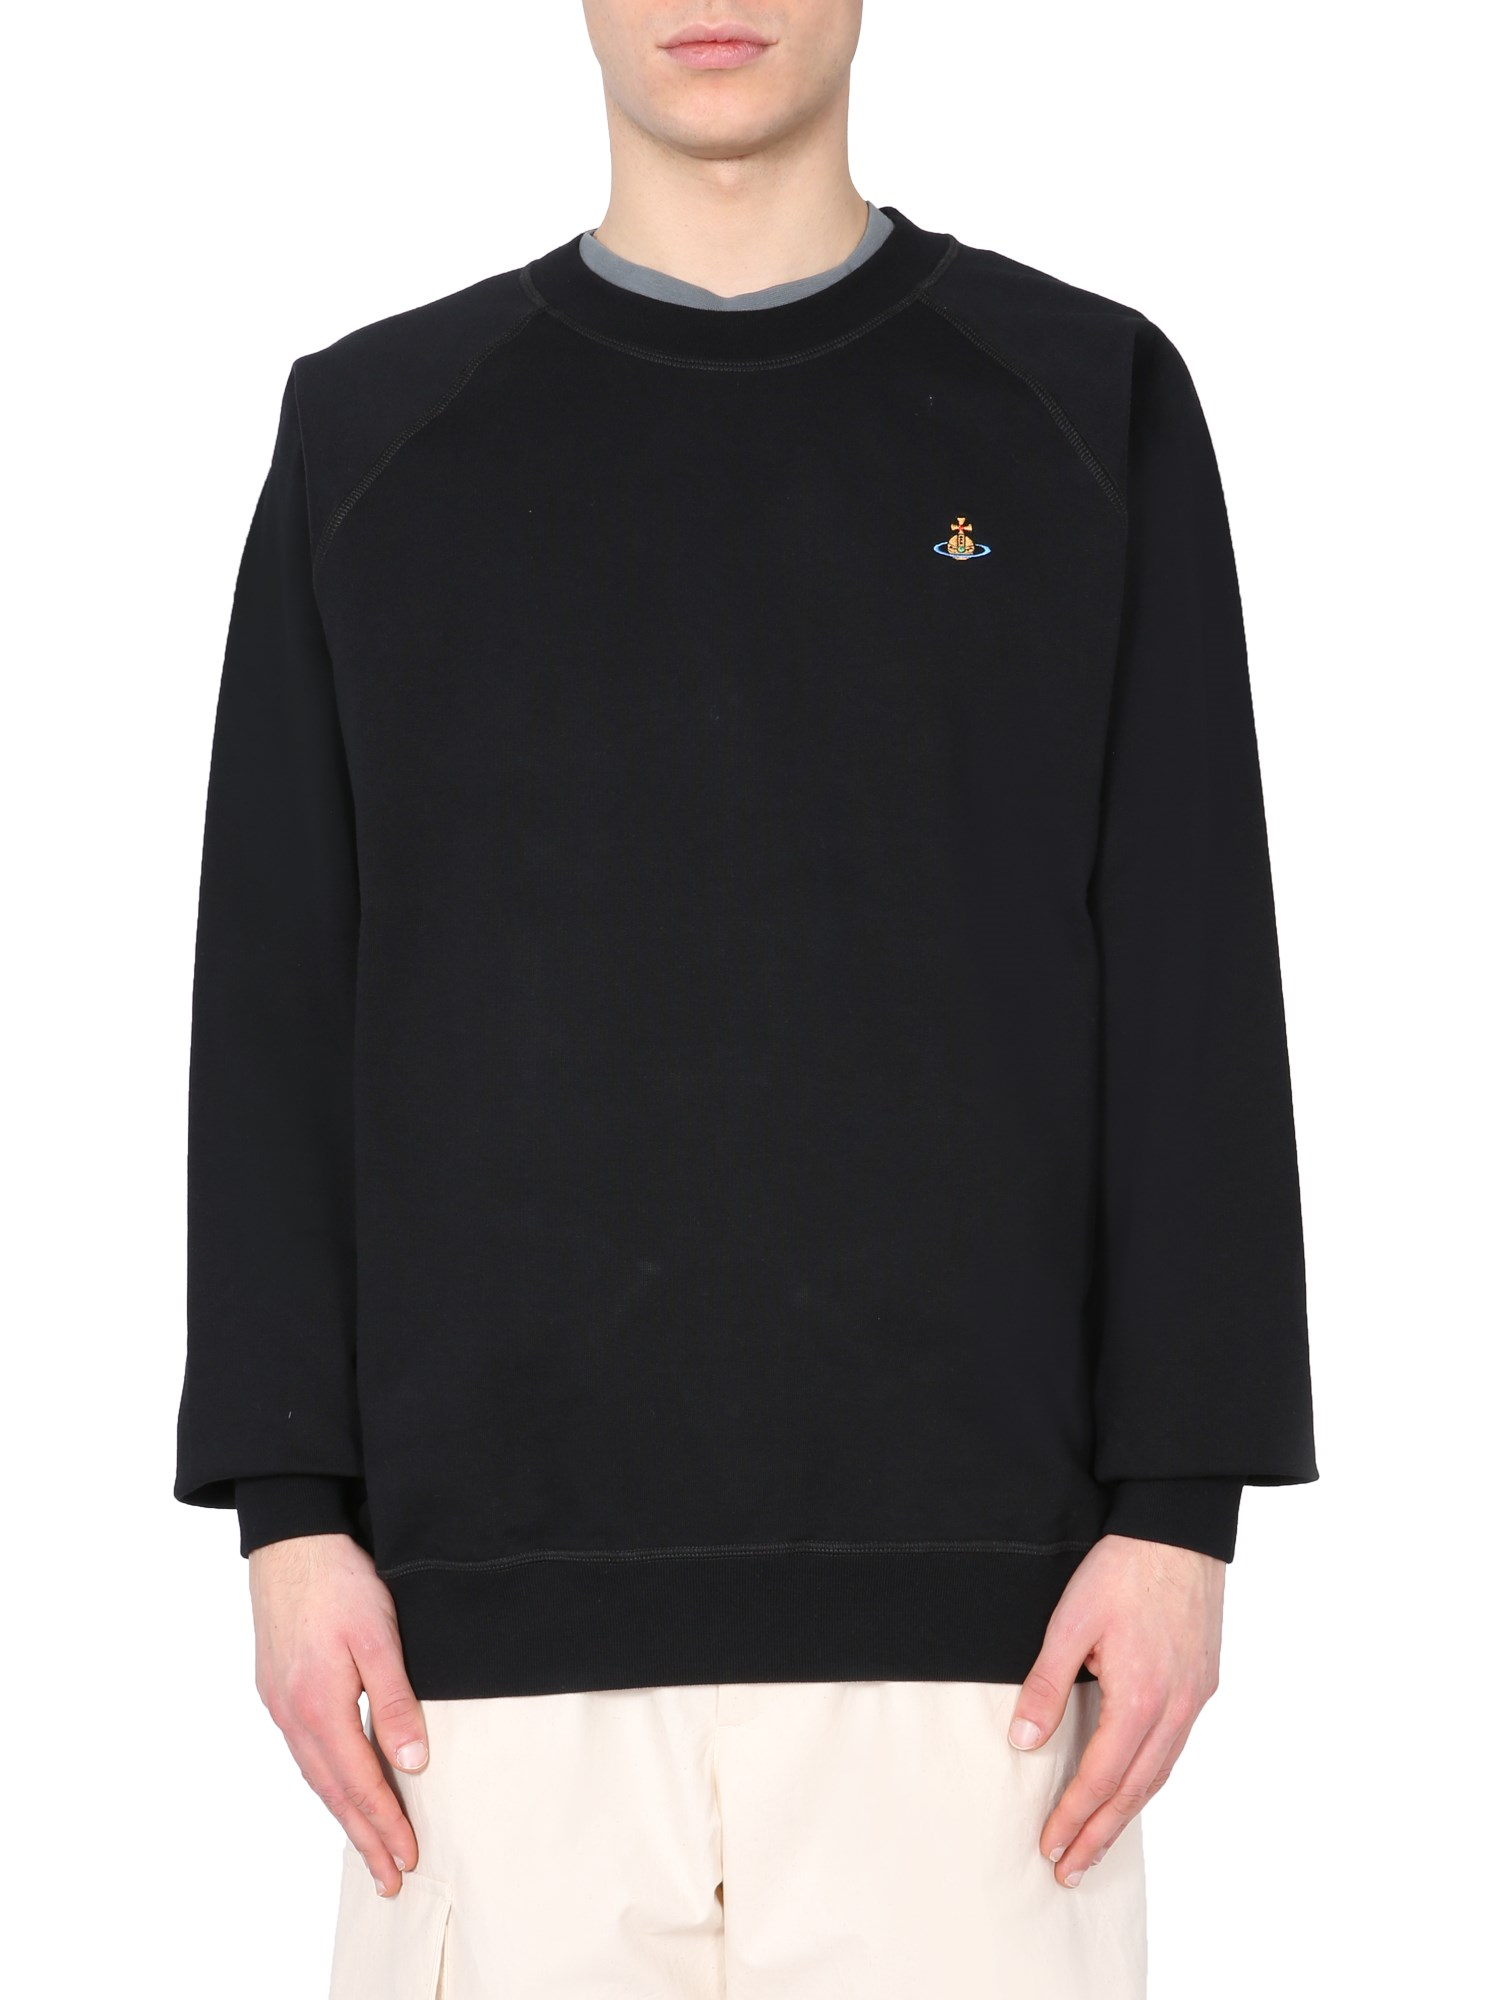 Vivienne Westwood EMBROIDERED SWEATSHIRT